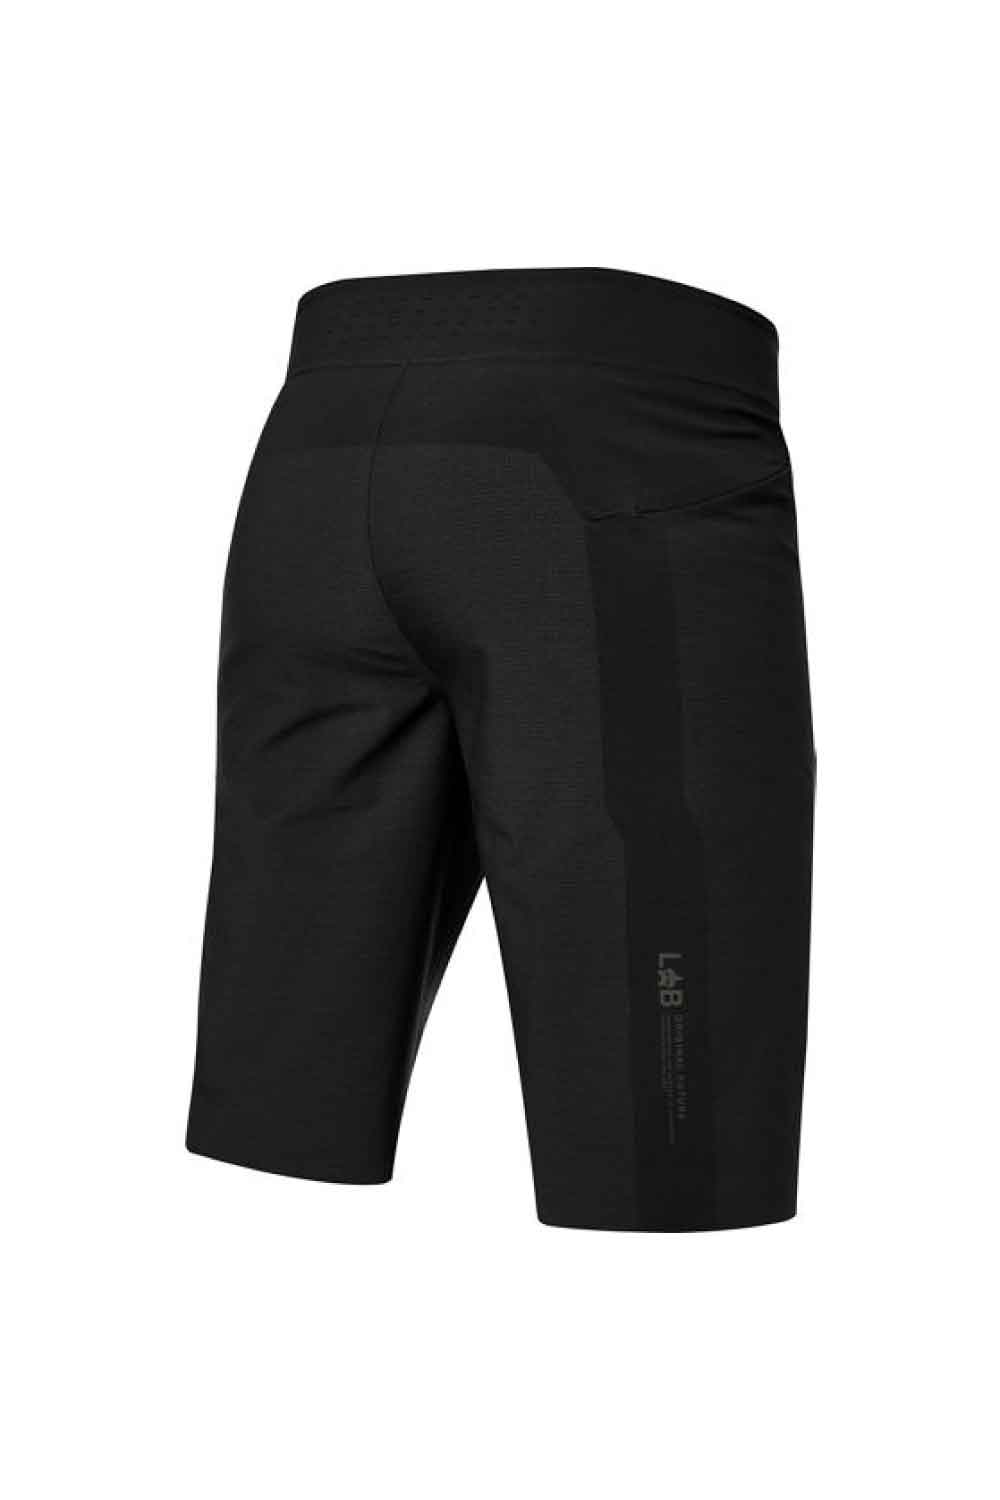 FOX Racing 2020 Ranger Rawtec Men's MTB Bike Short